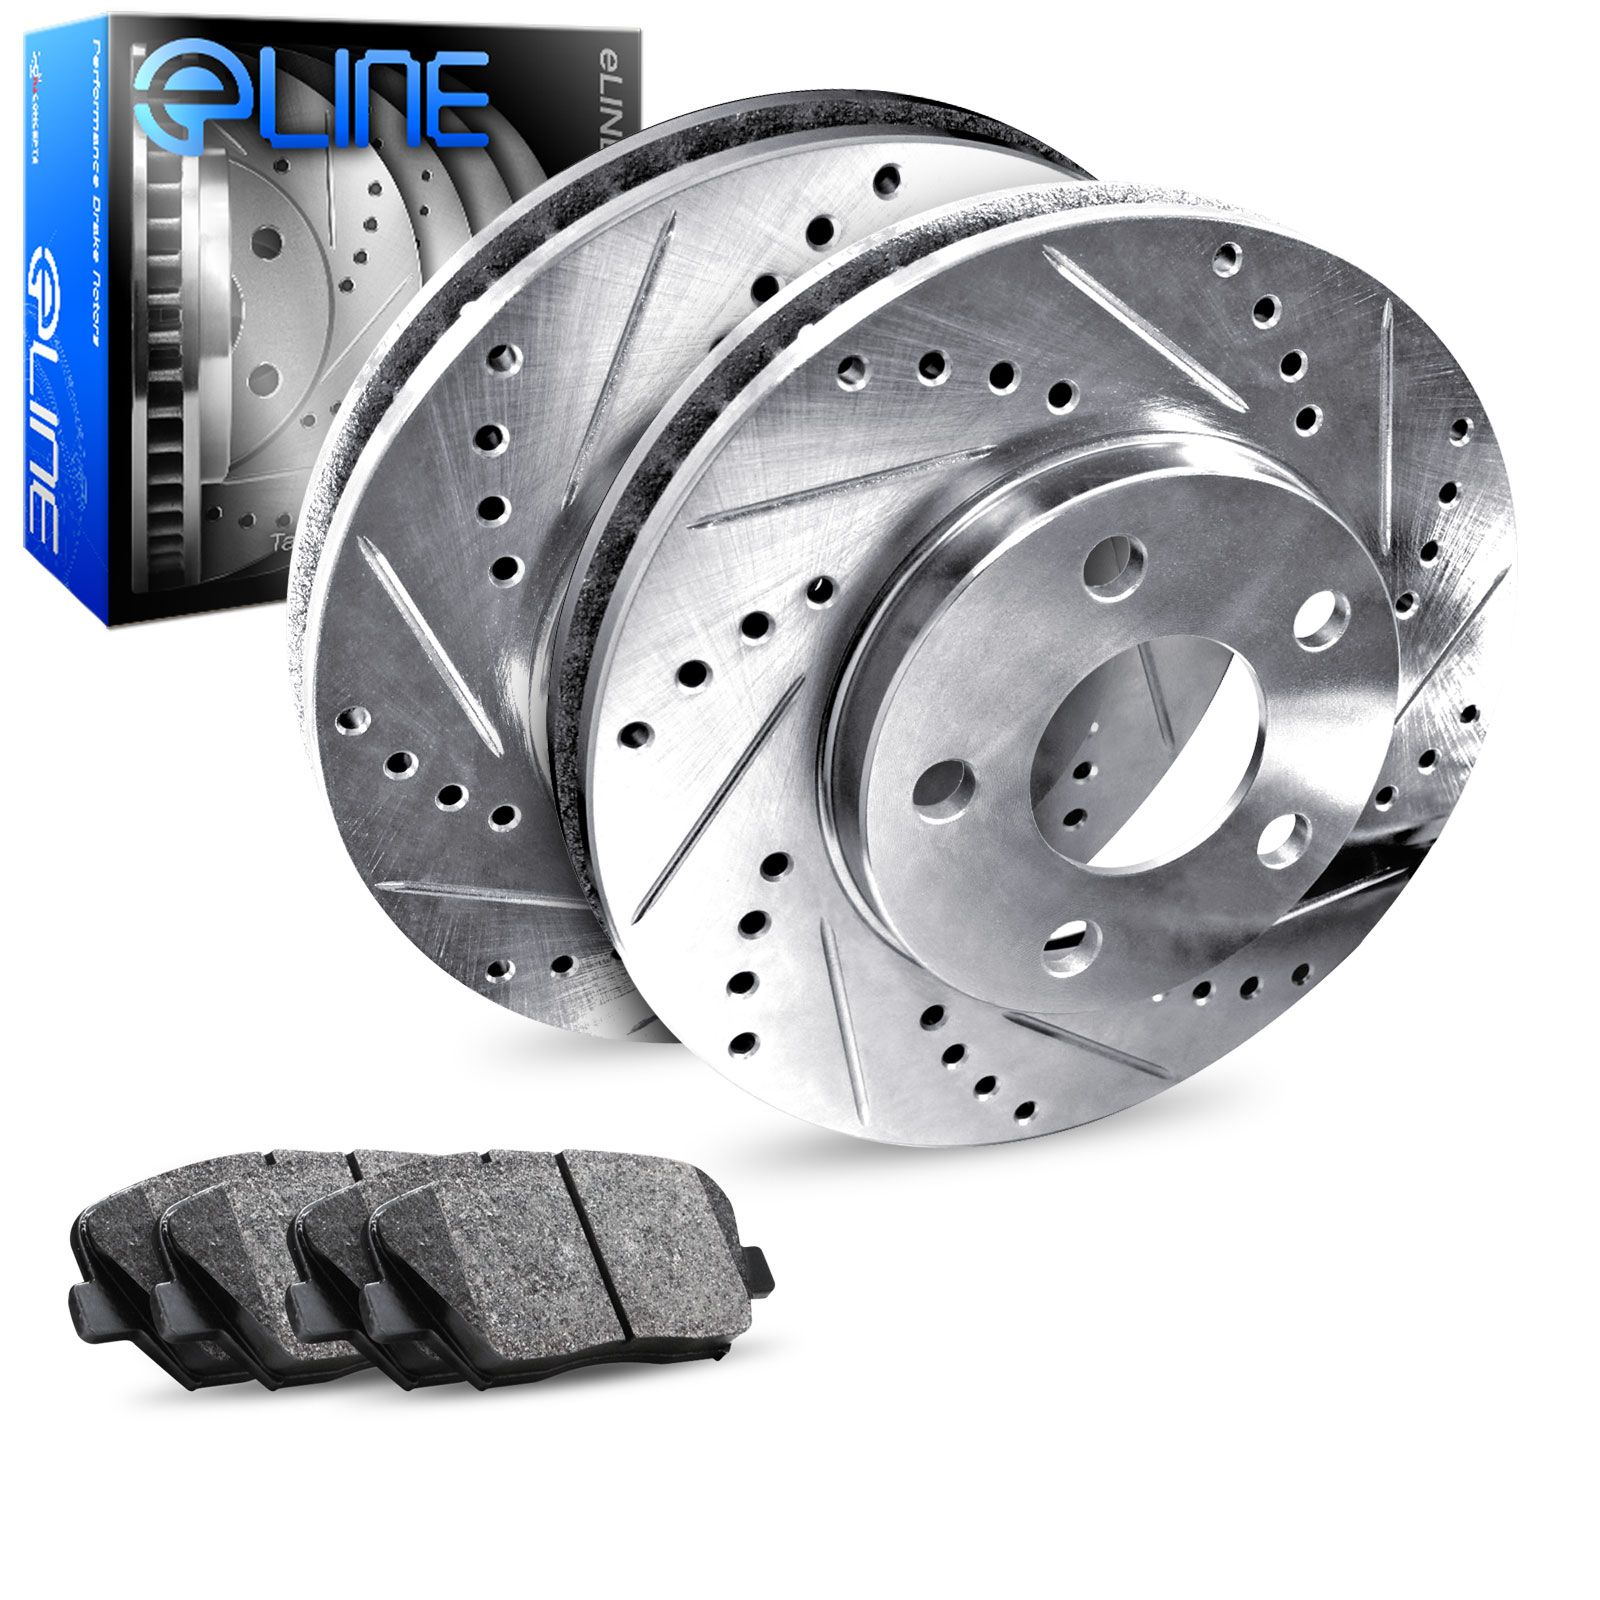 R1 Concepts KEOE11727 Eline Series Replacement Rotors And Ceramic Pads Kit Front